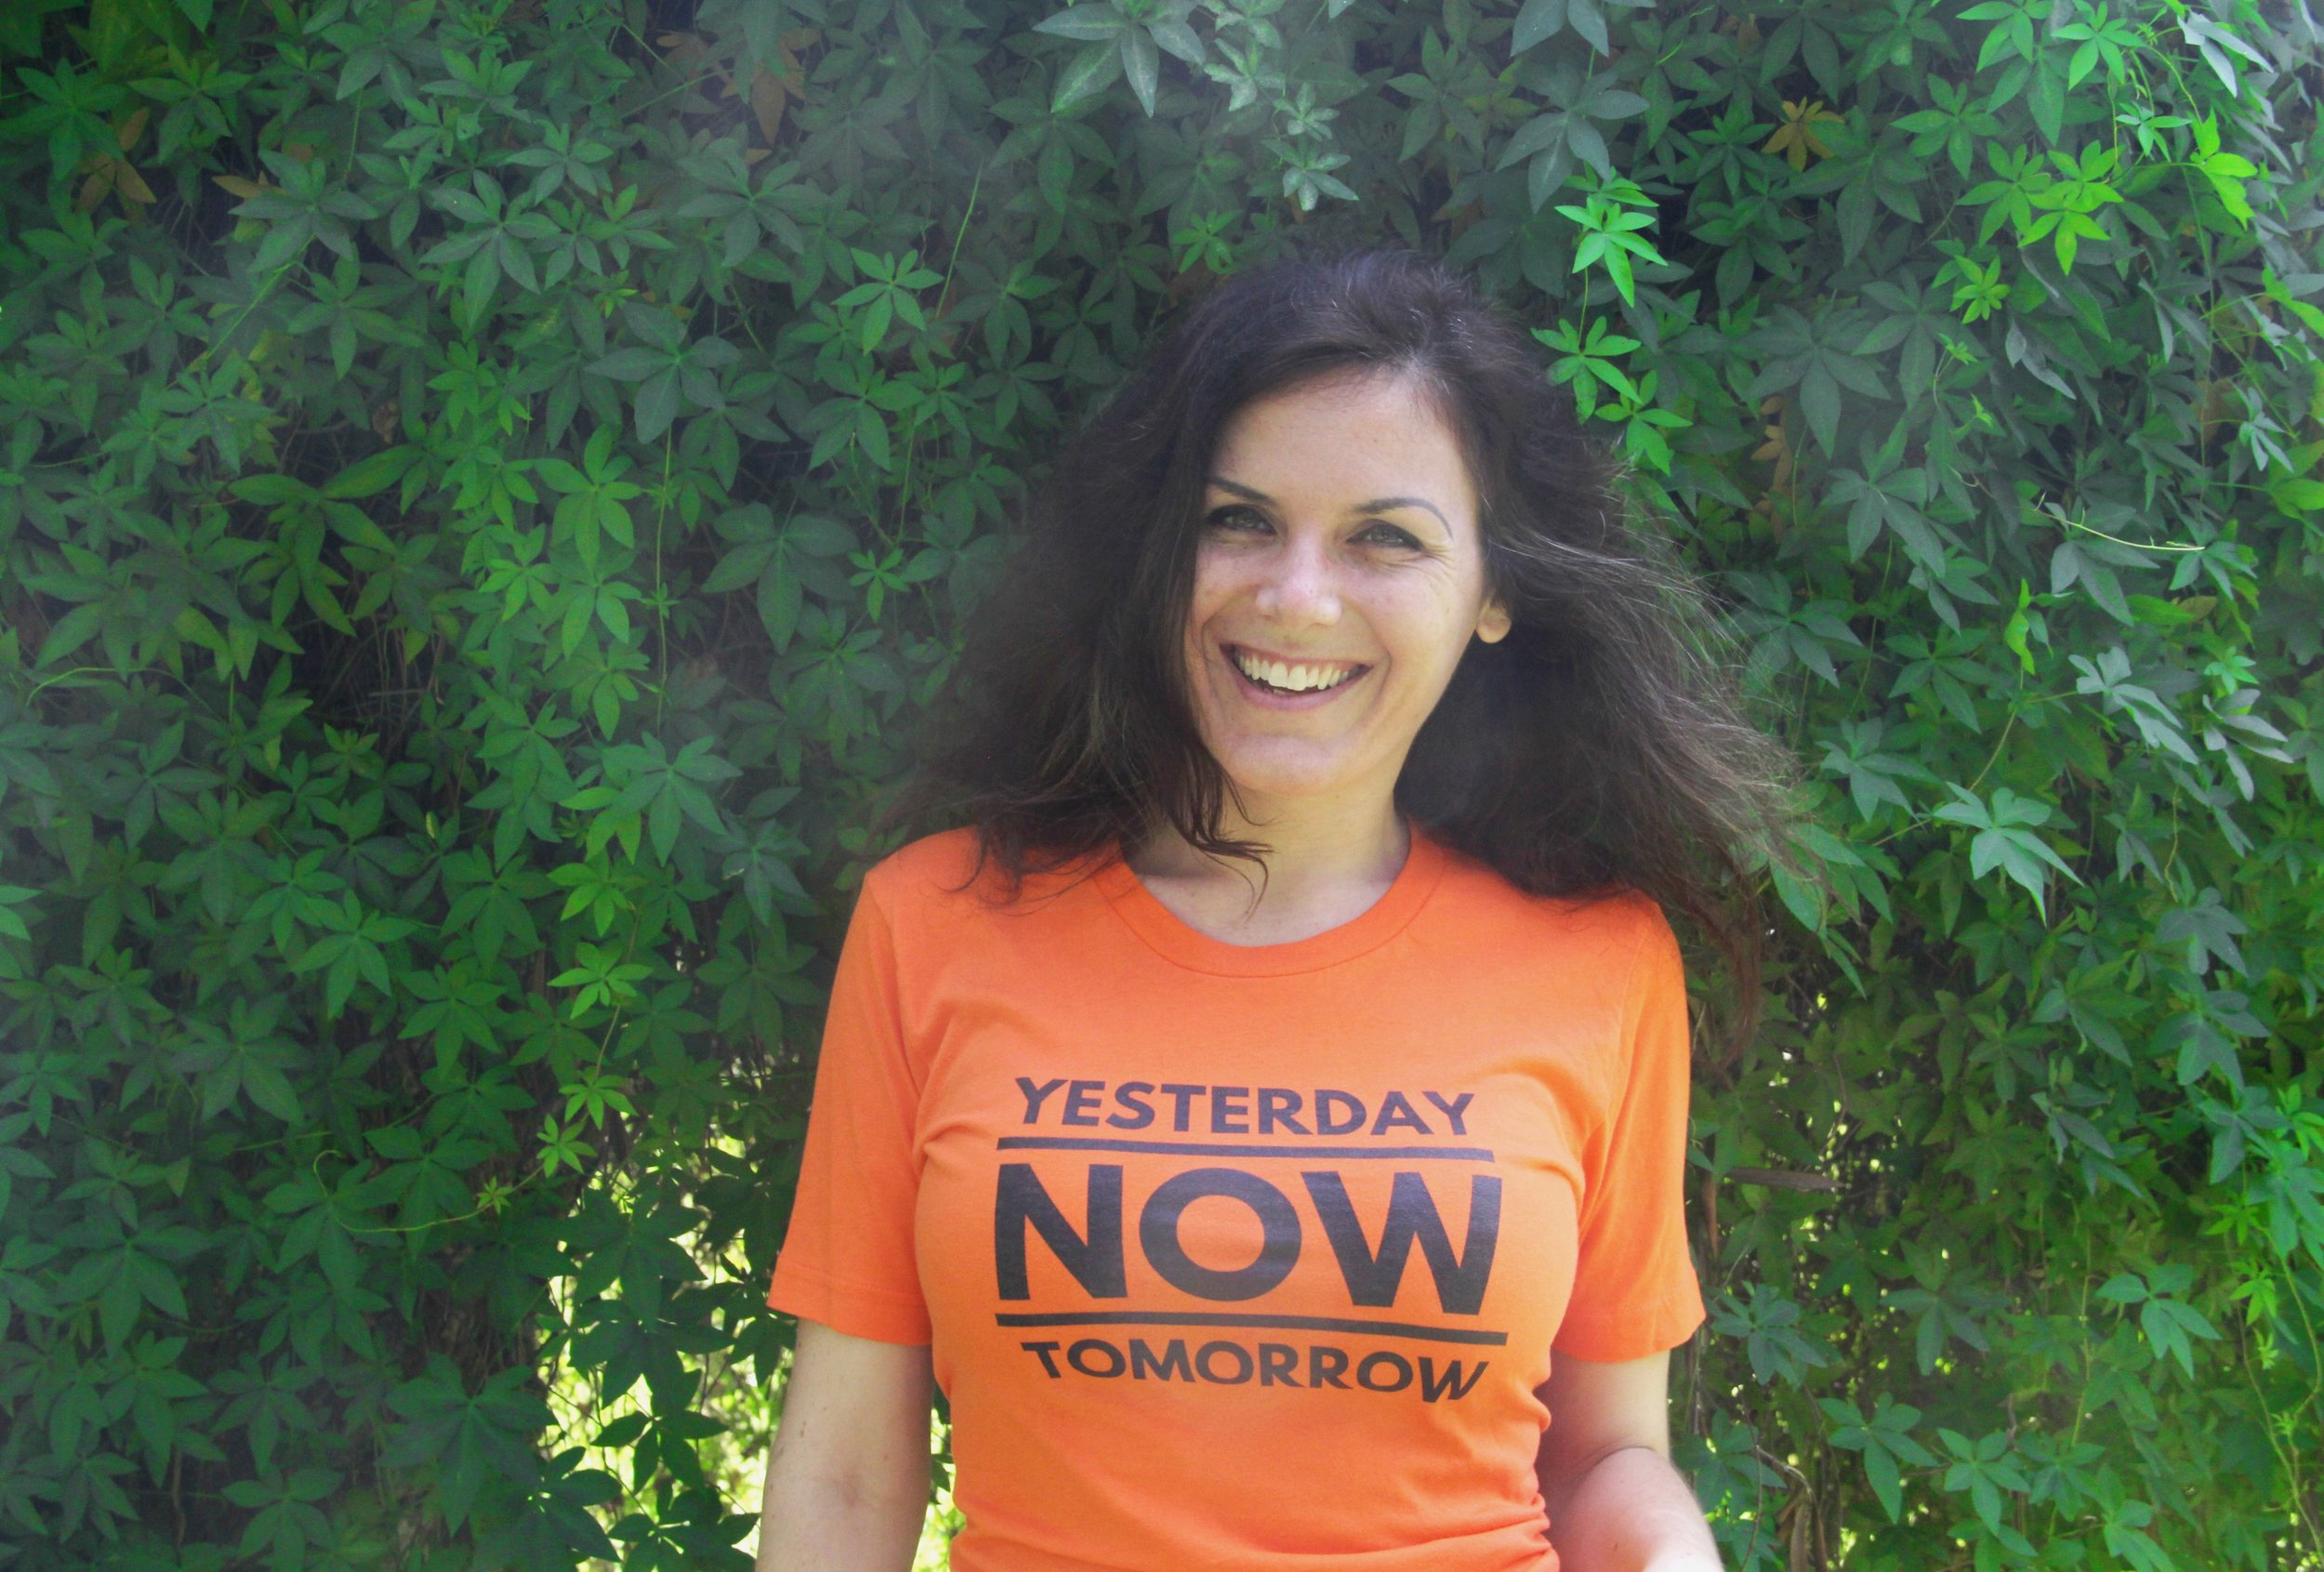 Alexandra in Wearable Wisdom touting the value of living in the present